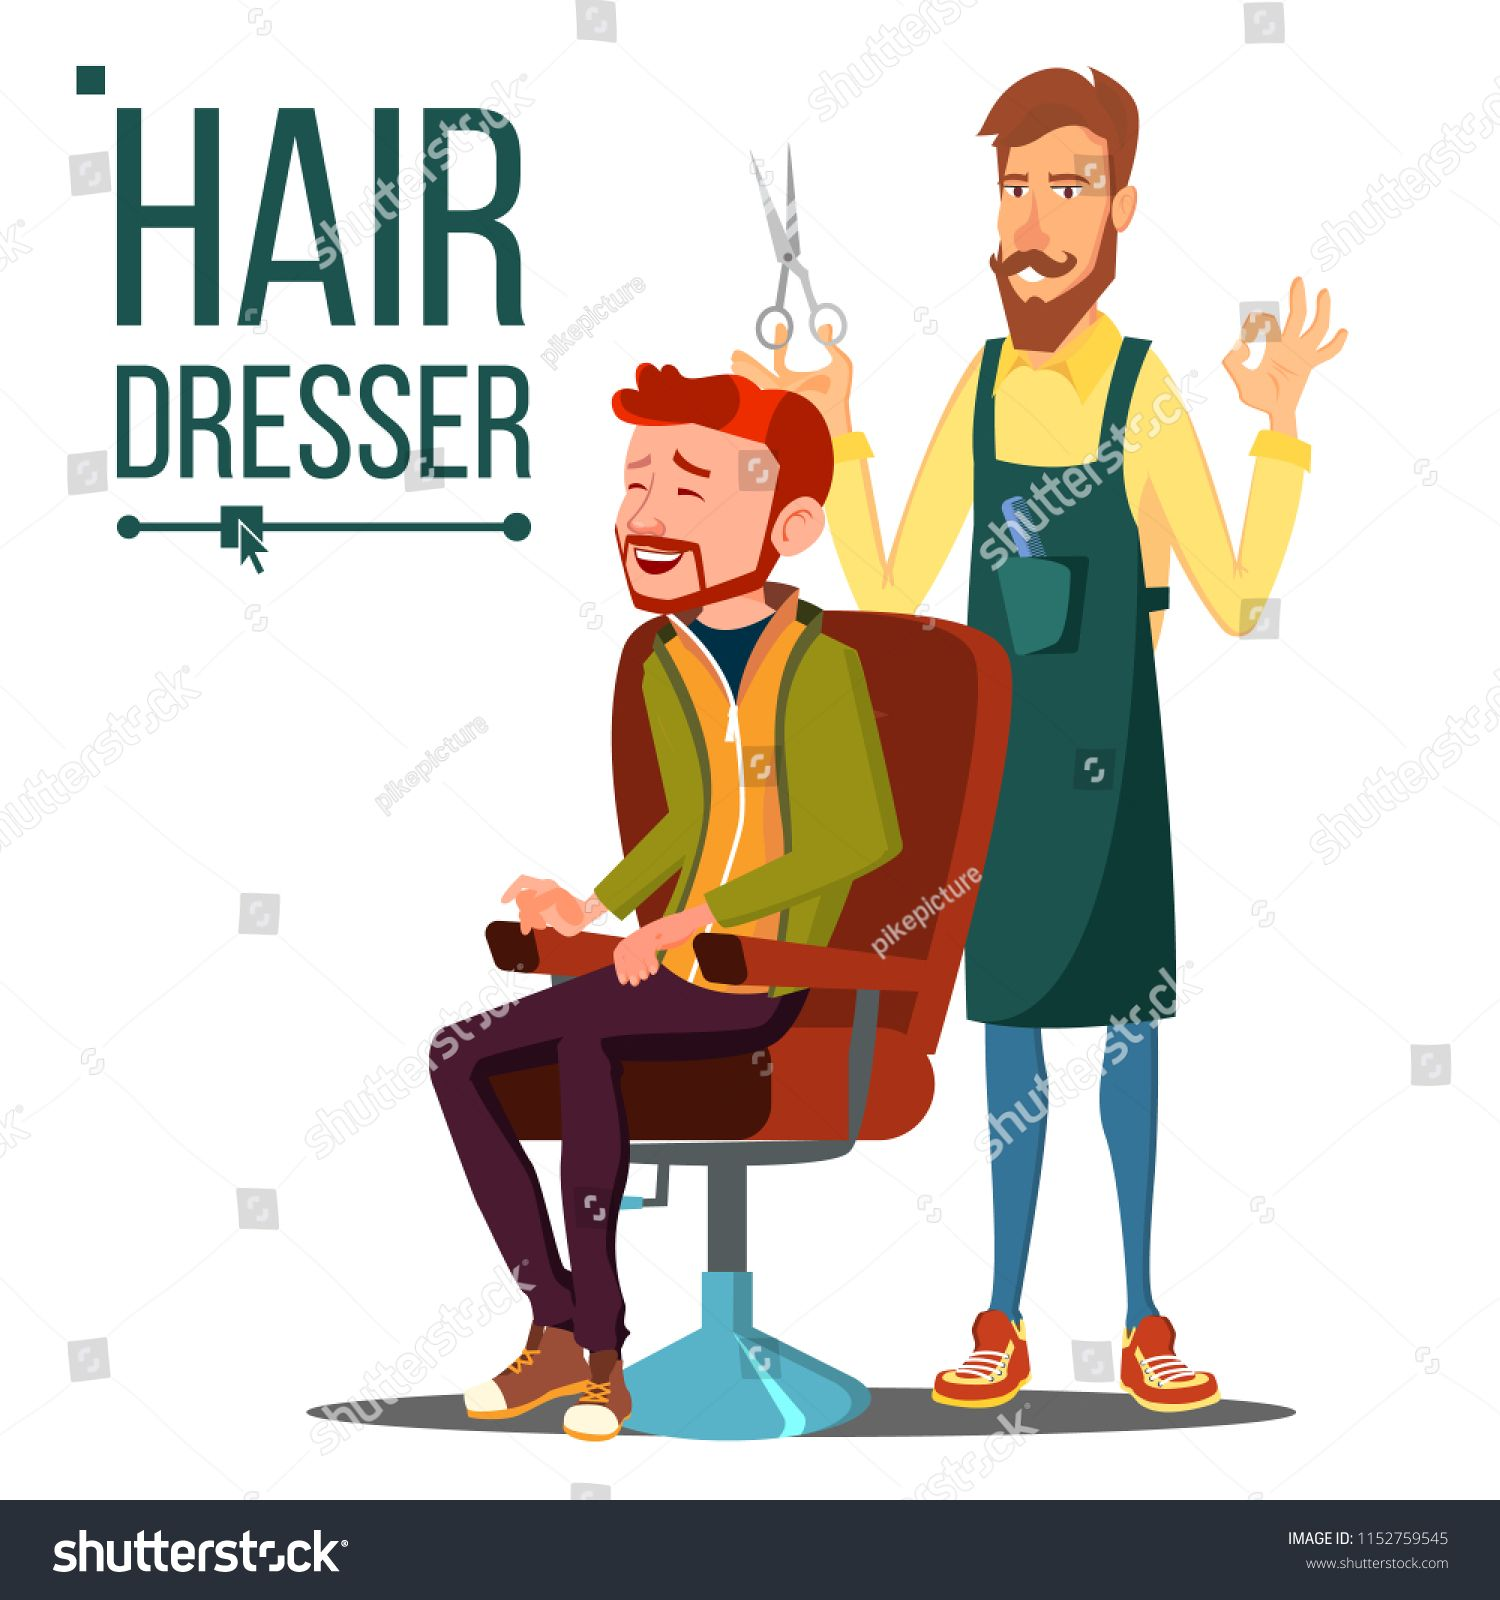 Hairdresser And Man Vector Barber Scissors Stylist Barber Hairdressers Salon Hair Clipper Isolated Flat Carto Hairdresser Salon Hairdresser Hair Clippers